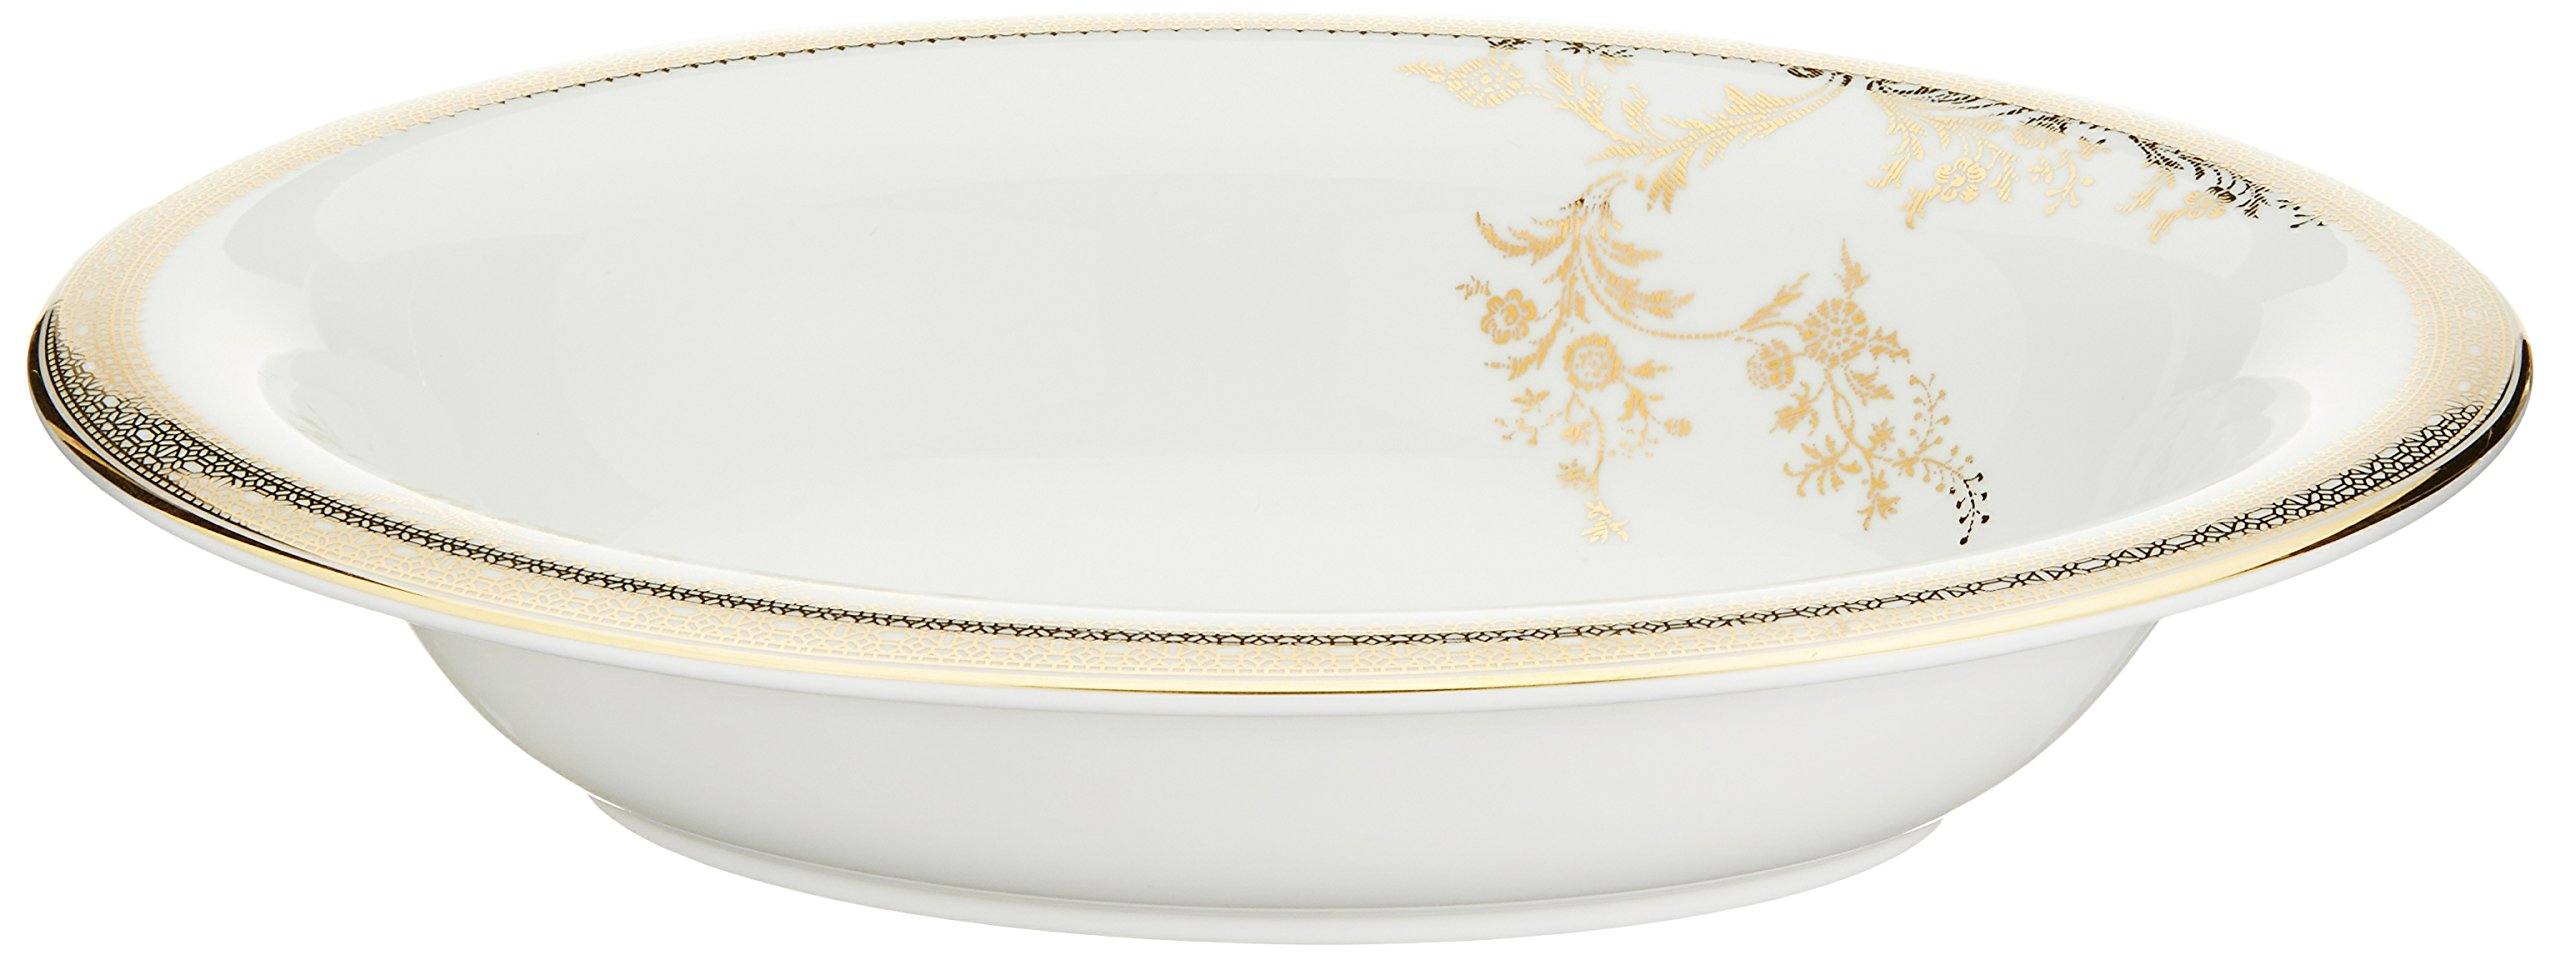 Wedgwood Vera Wang Vera Lace Gold 9-3/4-Inch Oval Open Vegetable